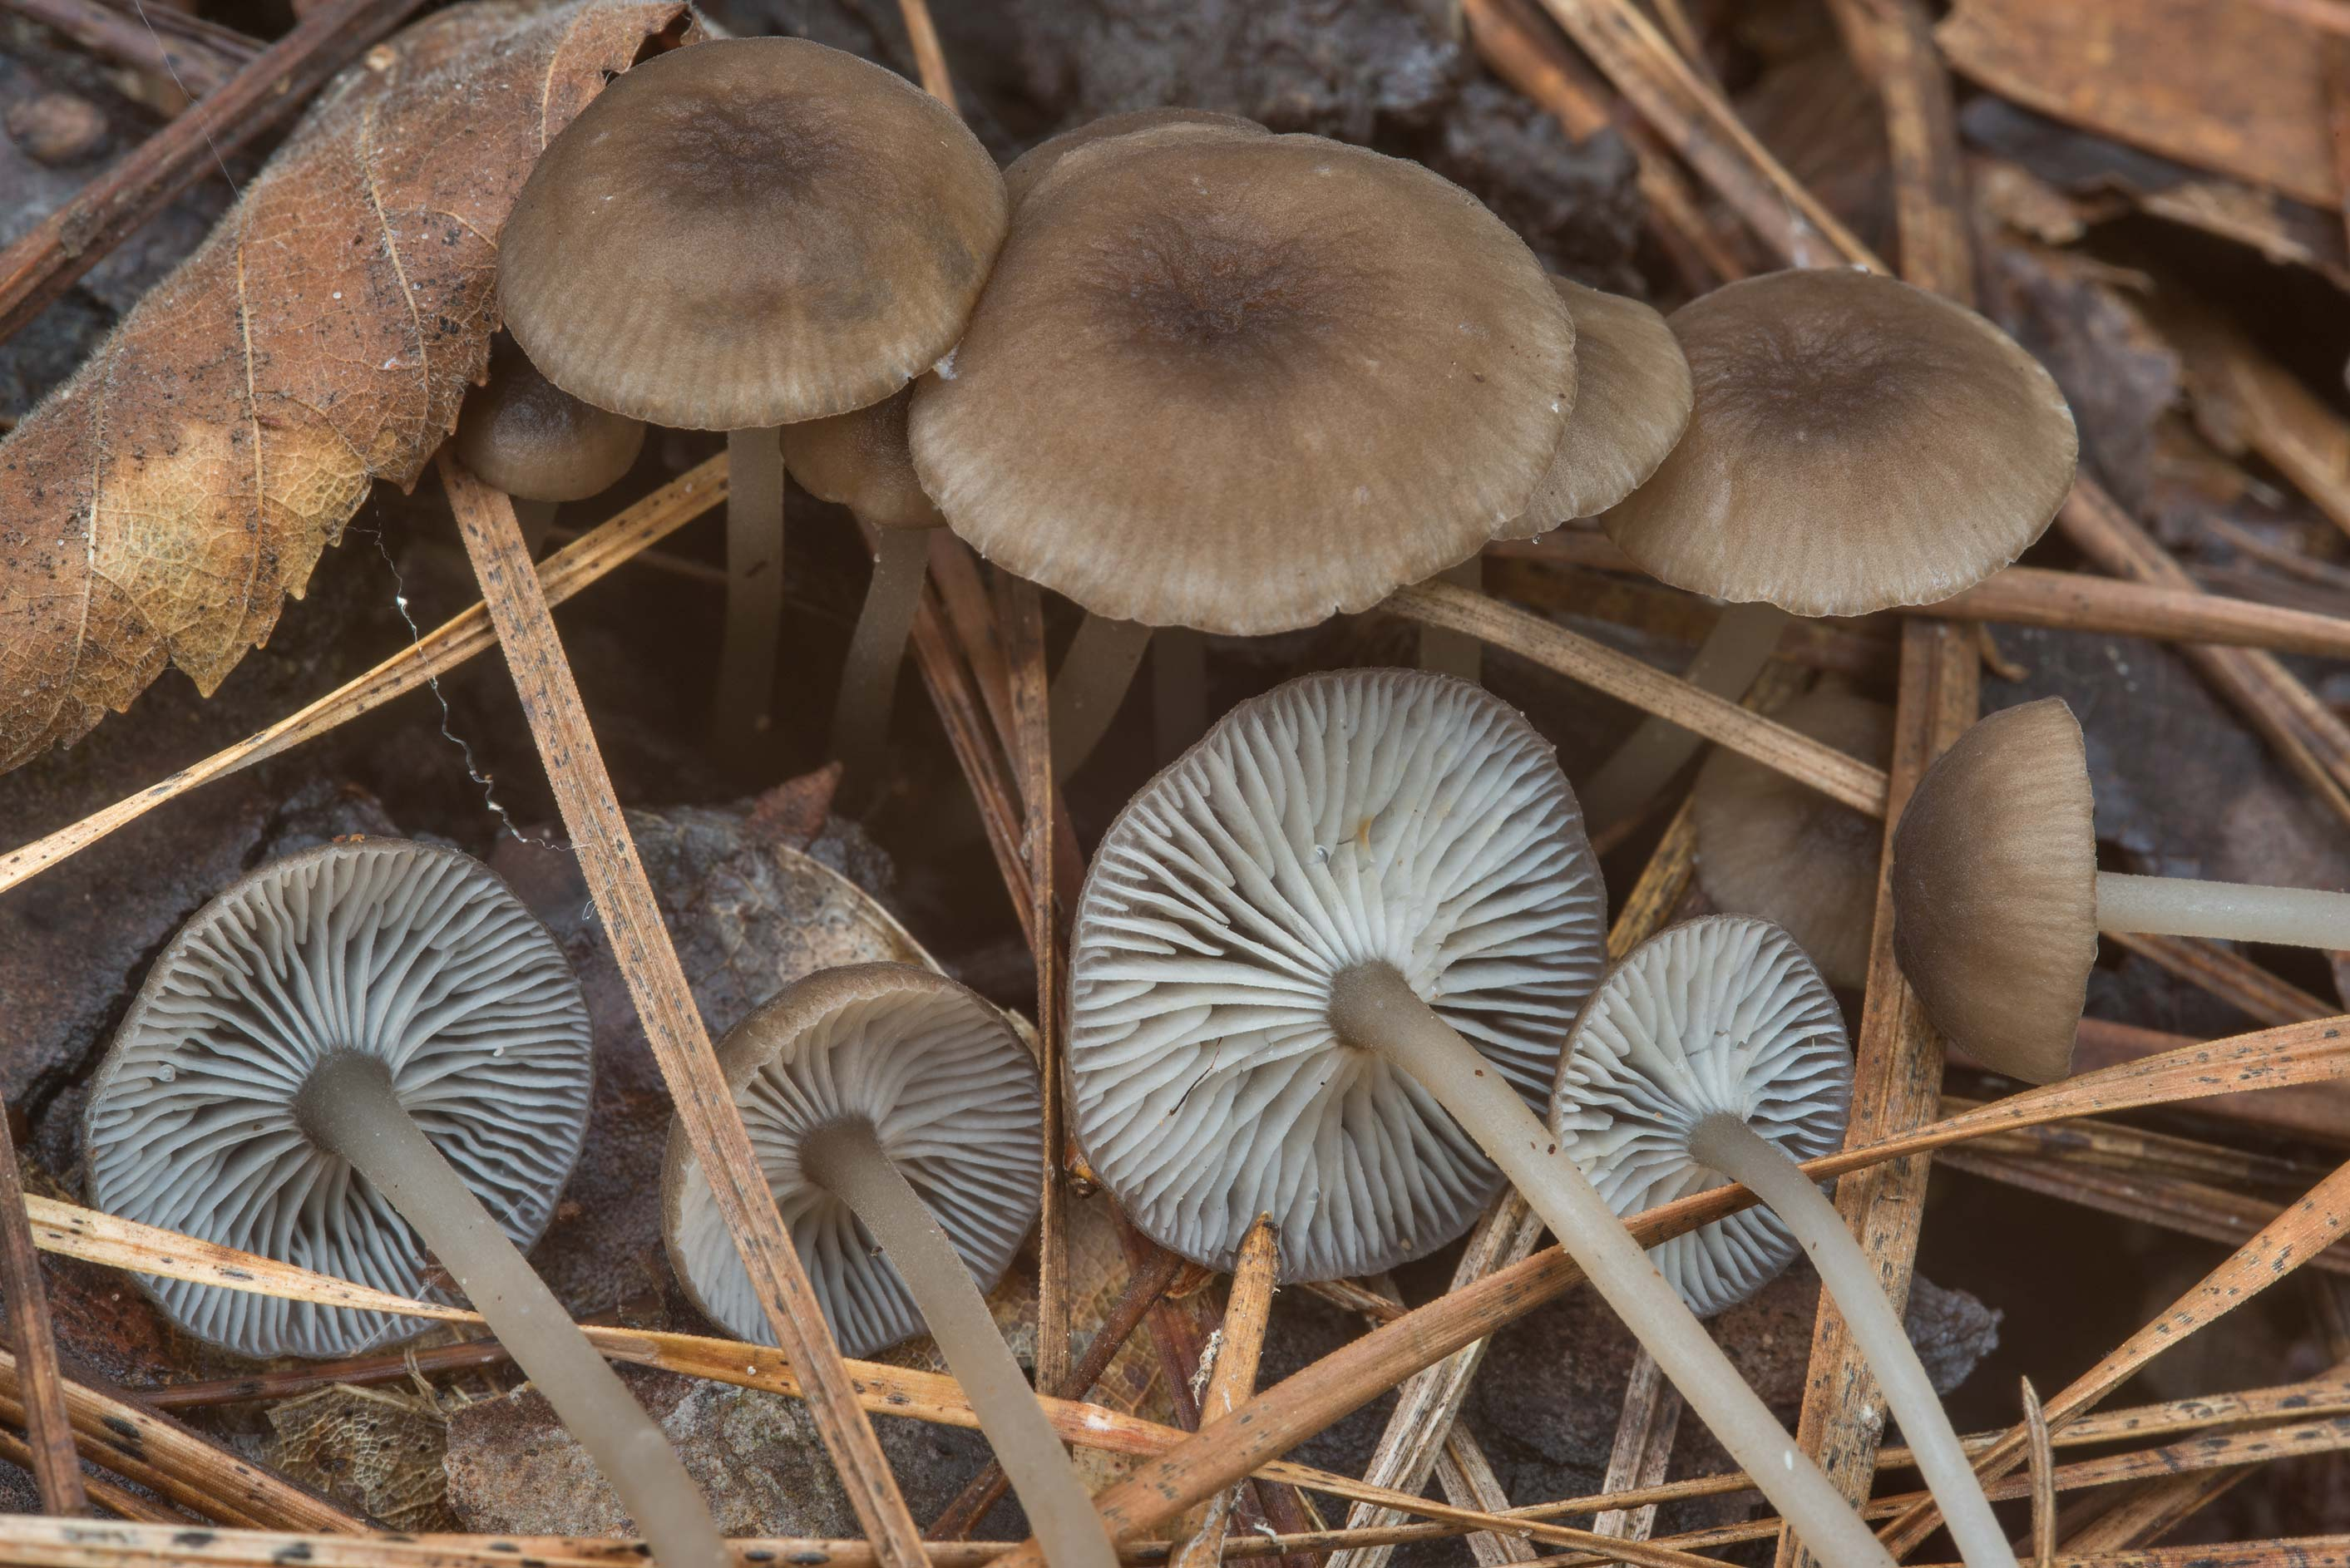 Close up of mushrooms Hydropus marginellus on...National Forest. Richards, Texas